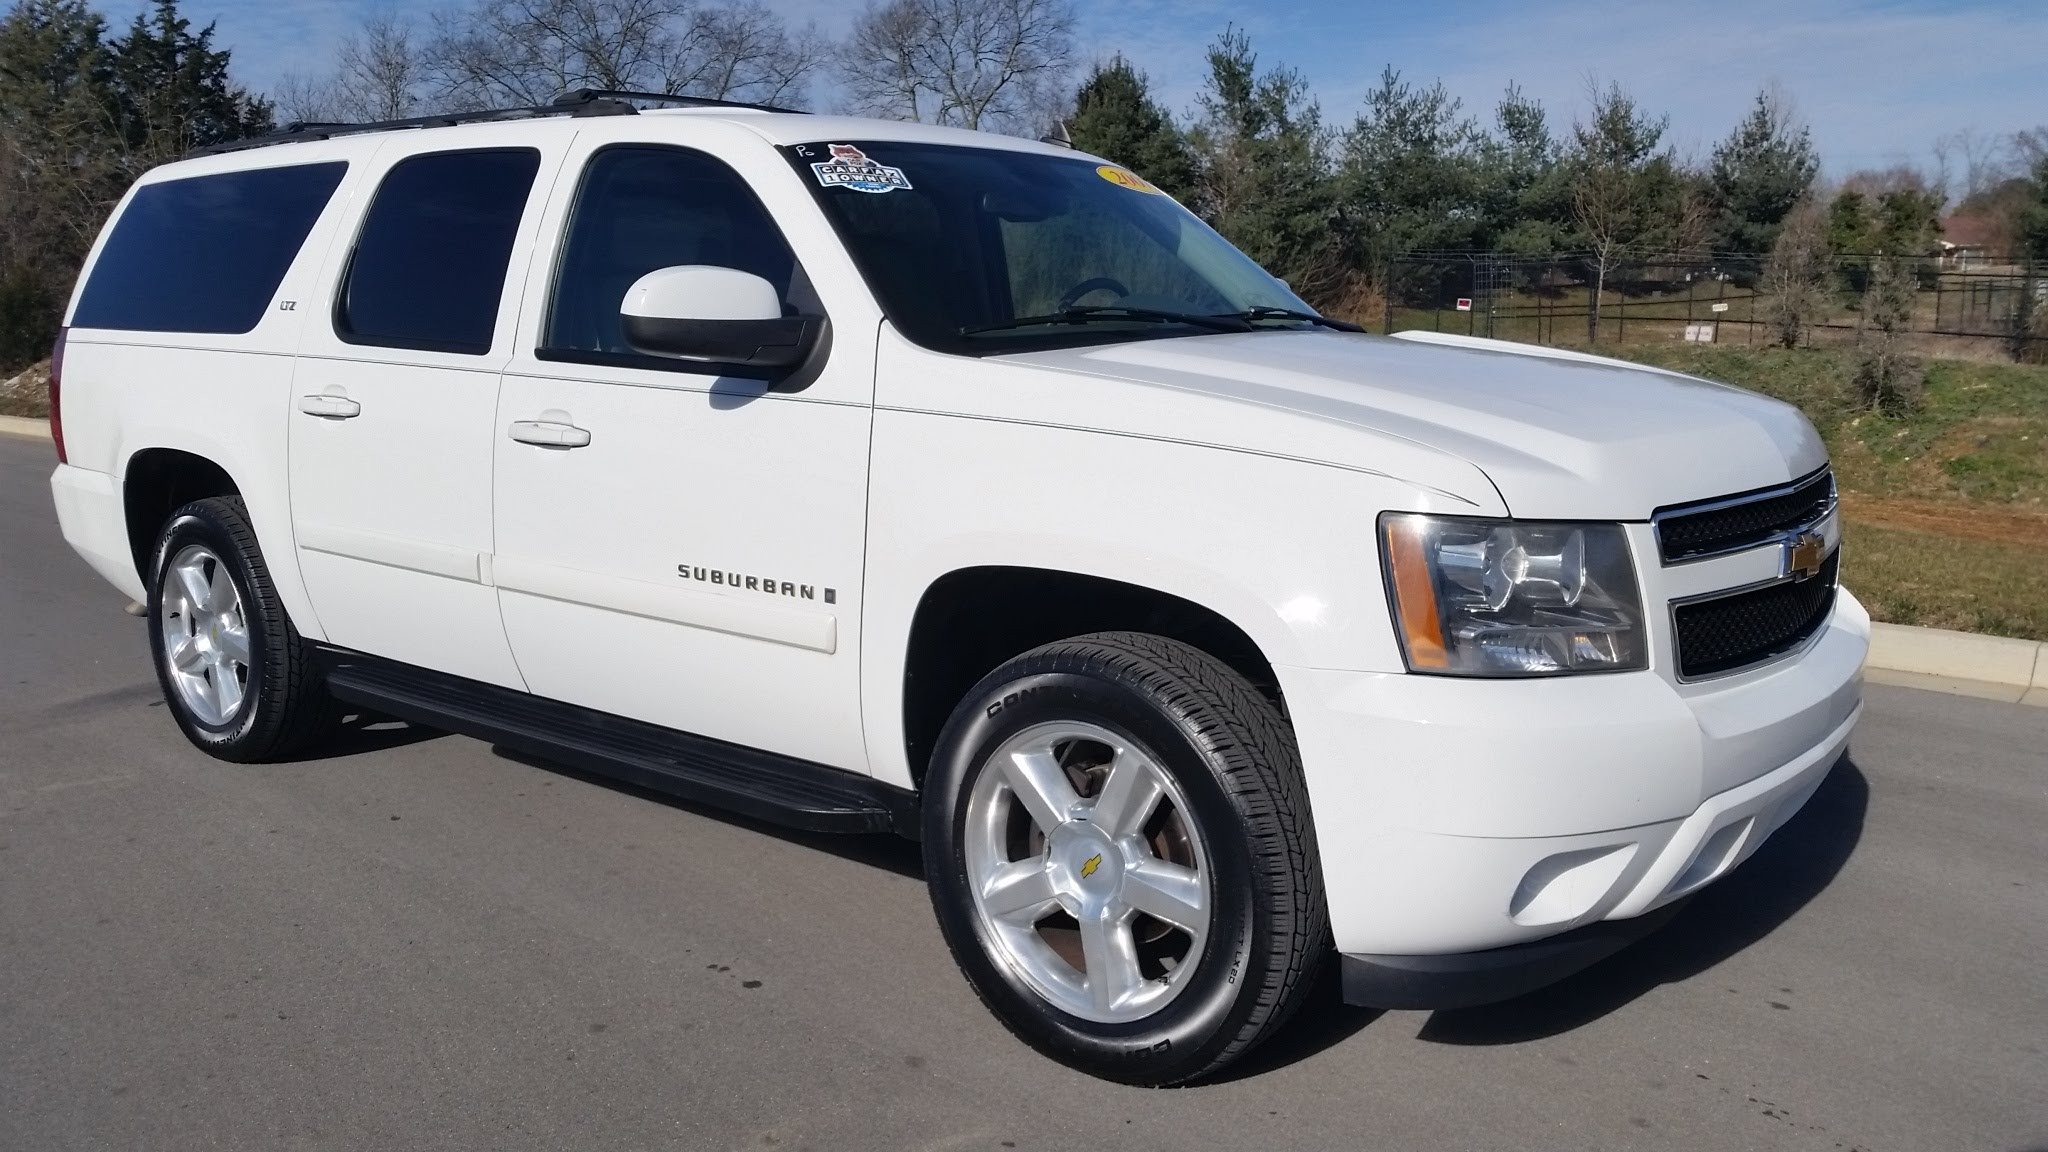 SOLD.2007 CHEVROLET SUBURBAN LTZ 4X4 SUMMIT WHITE 1 OWNER 173K for sale Call 855-507-8520